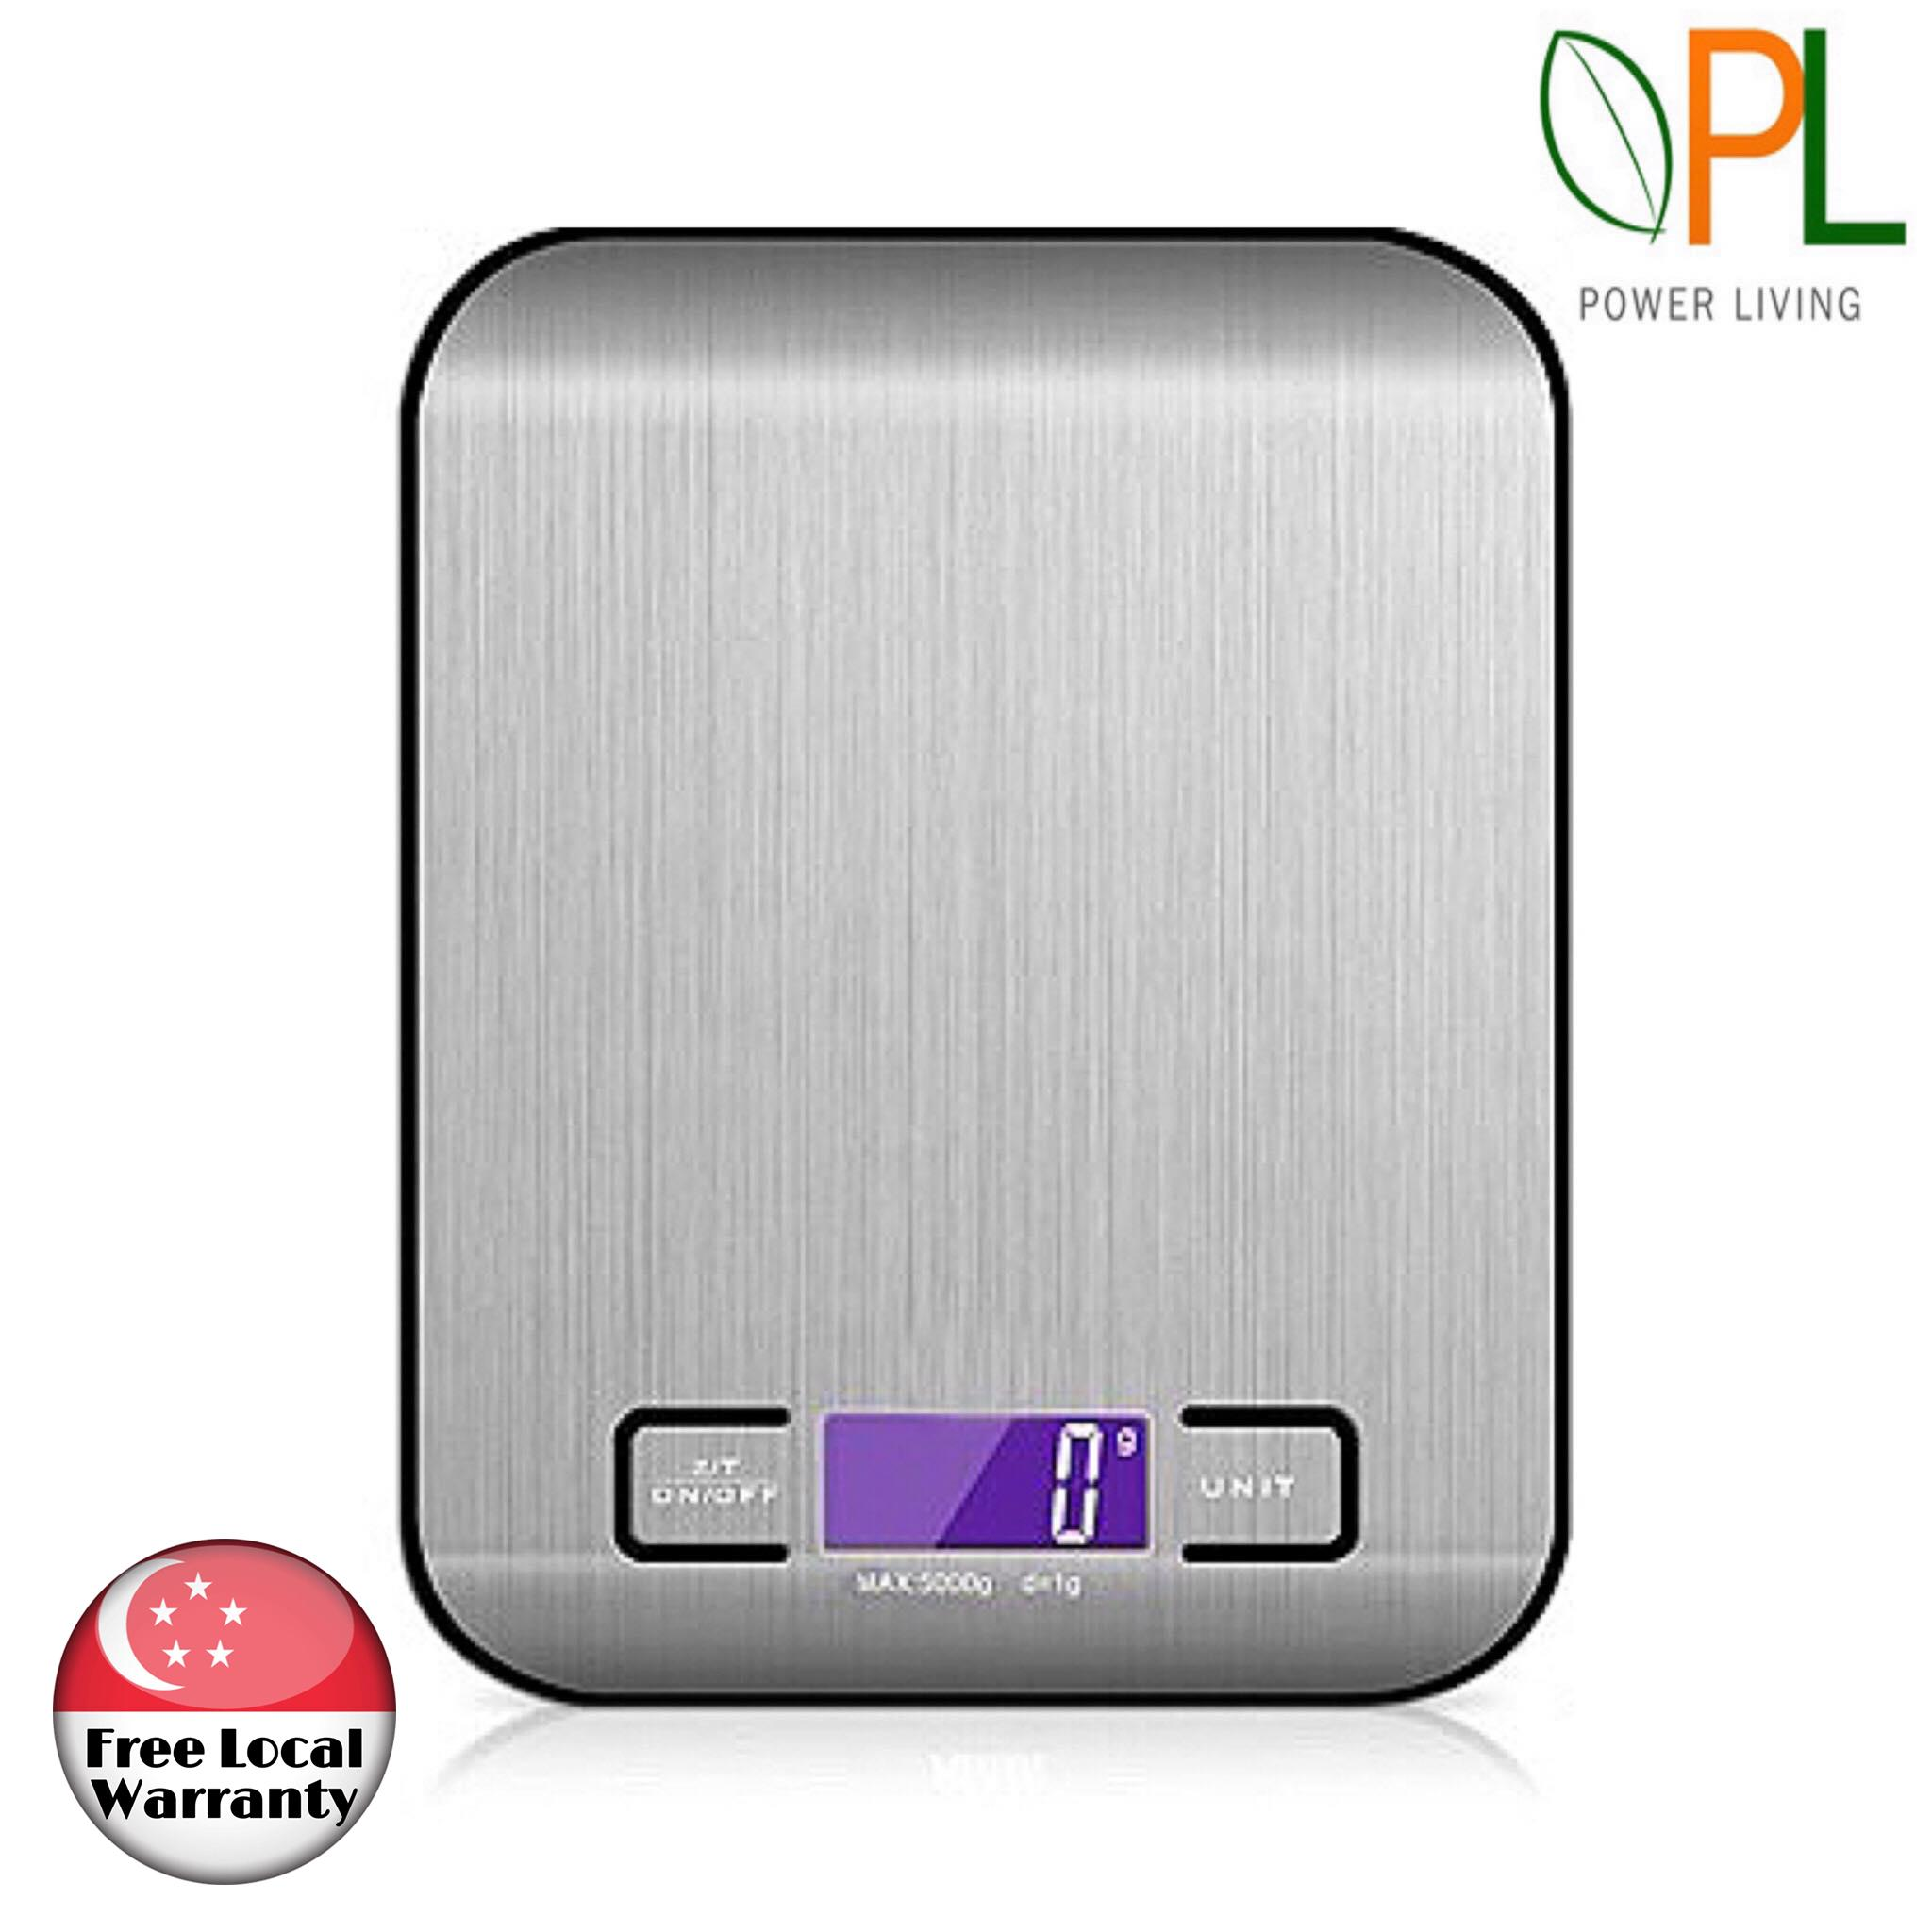 b351af6e9168 Digital Weighing Scale Kitchen LED Backlight Weigh Range 10kg LED Screen  Mini Electronics Multifunction Cooking Baking Measuring Tool– Silver